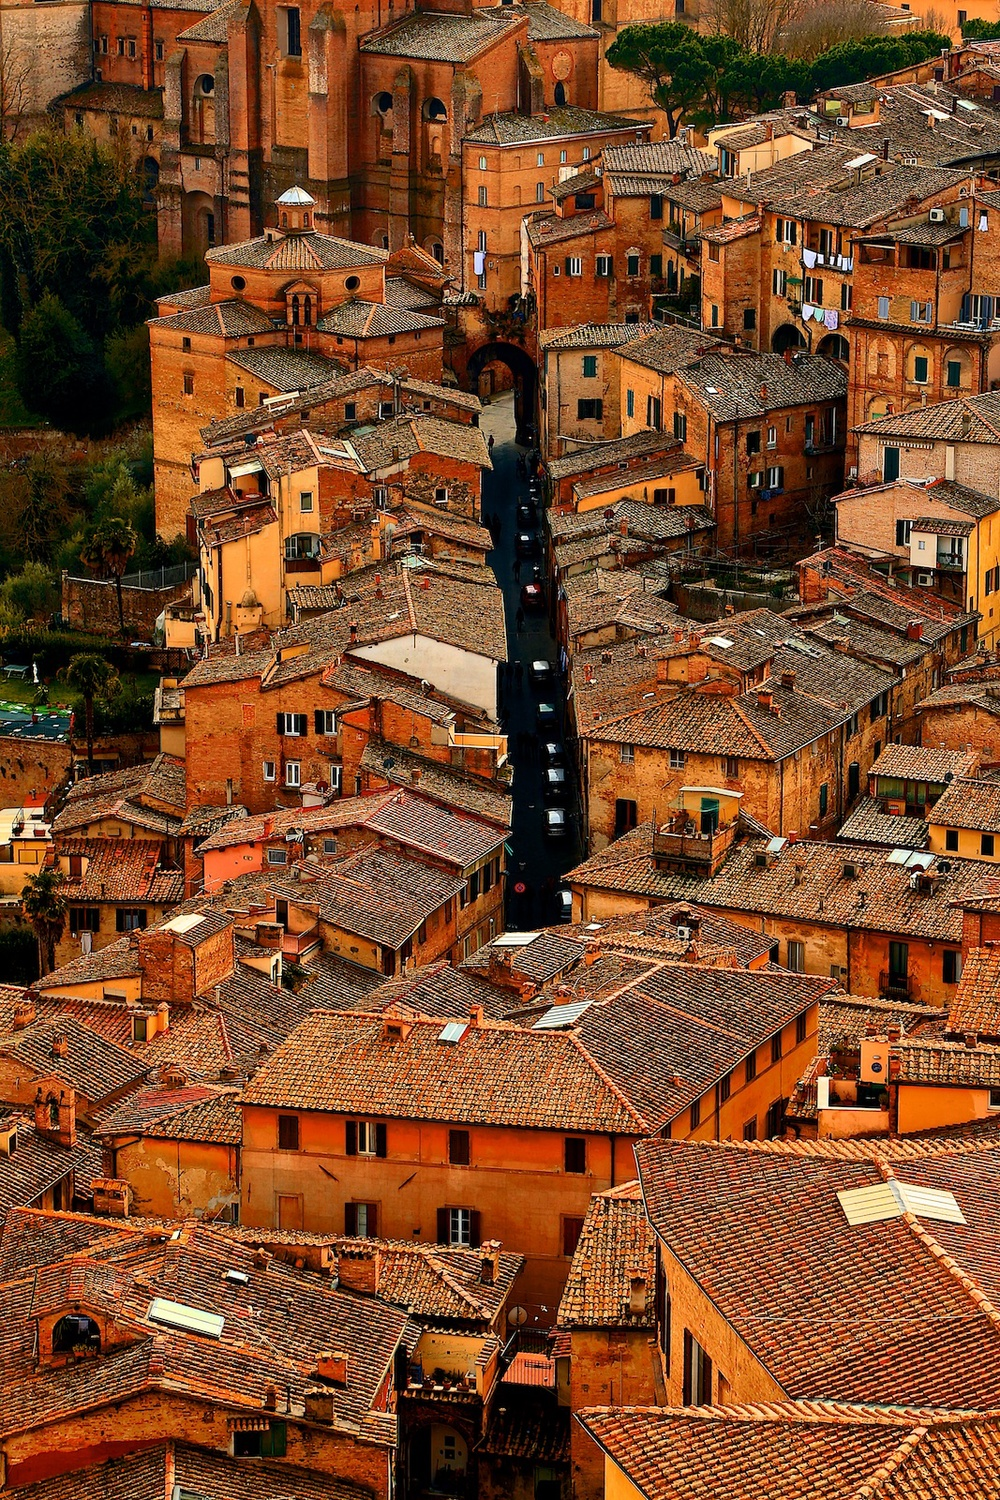 roofs-of-siena-toscana-tuscany-denis-bosnic-photography- 4.jpg